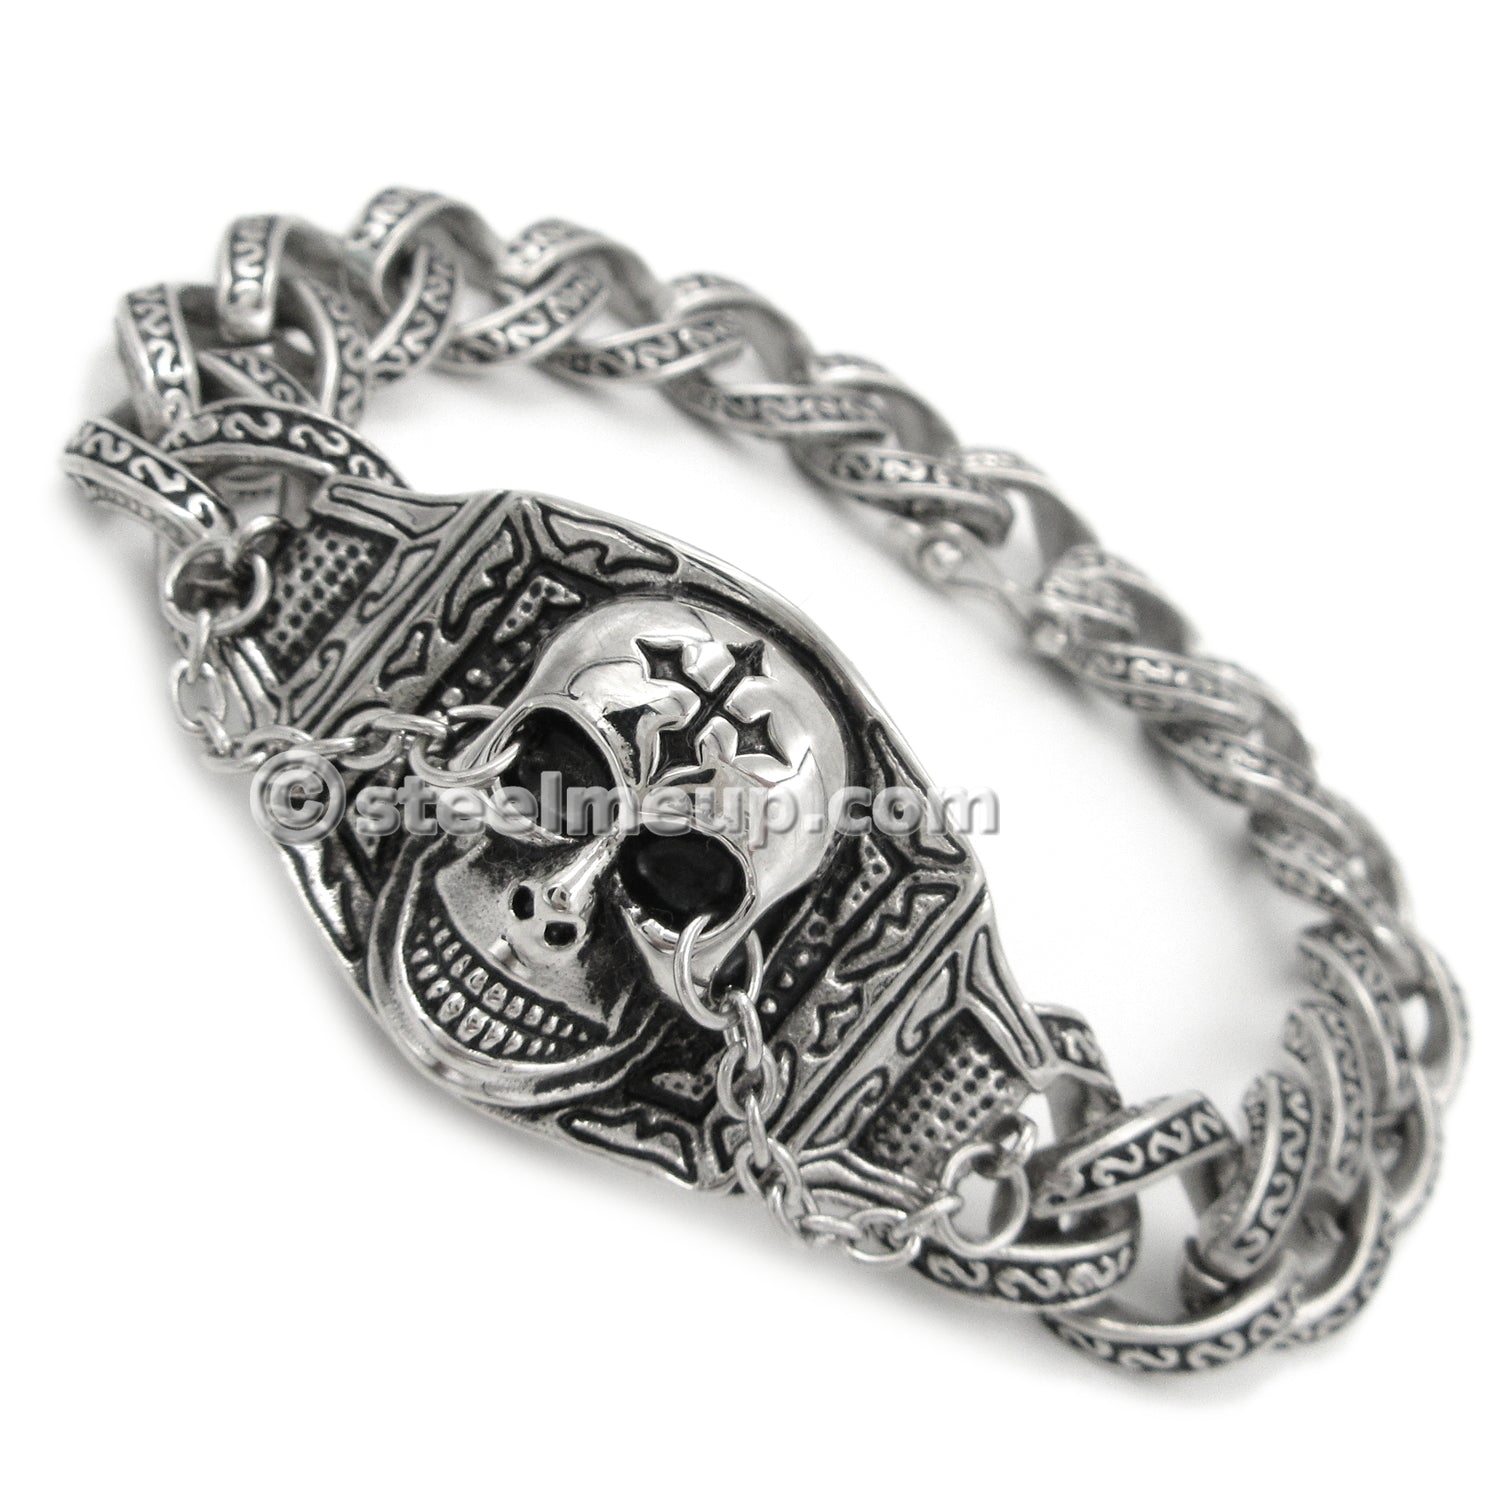 Stainless Steel Skull Face Chain Men Biker Bracelet 8.5""